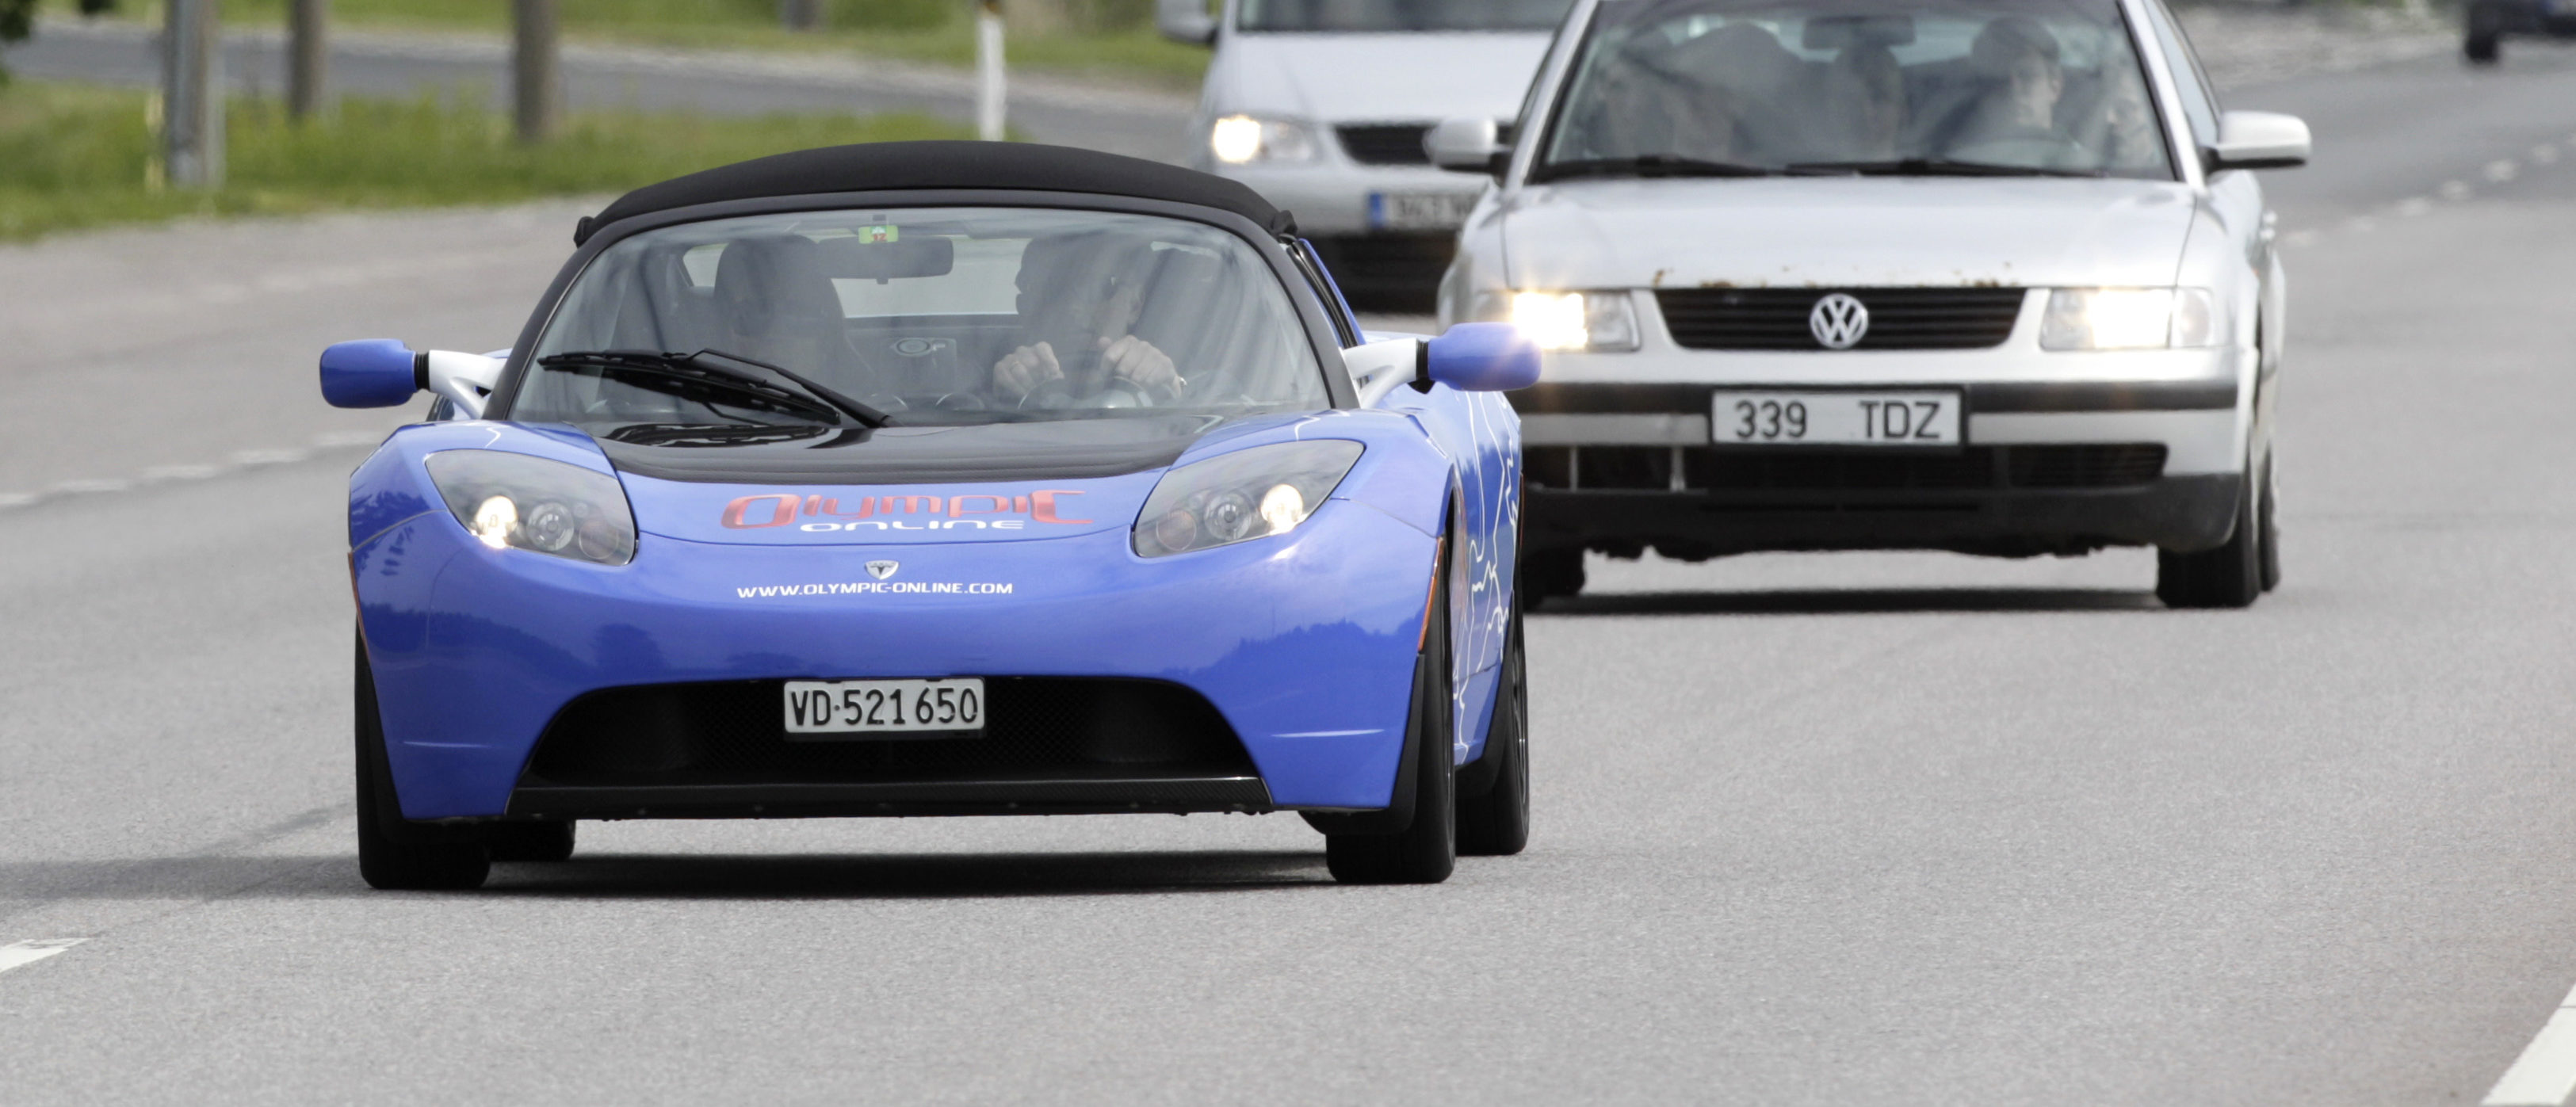 A Tesla Roadster runs on a road during an electric car rally from Tallinn to Monte-Carlo, near Tallinn June 1, 2012. The rally lasts for 10 days, during which electric cars will cross 10 countries and cover a distance of more than 3300 km (2050 miles). According to Tesla, the Roadster has a 302 hp (225 kW) electric engine and can cover more than 390 km (245 miles) per charge. REUTERS/Ints Kalnins